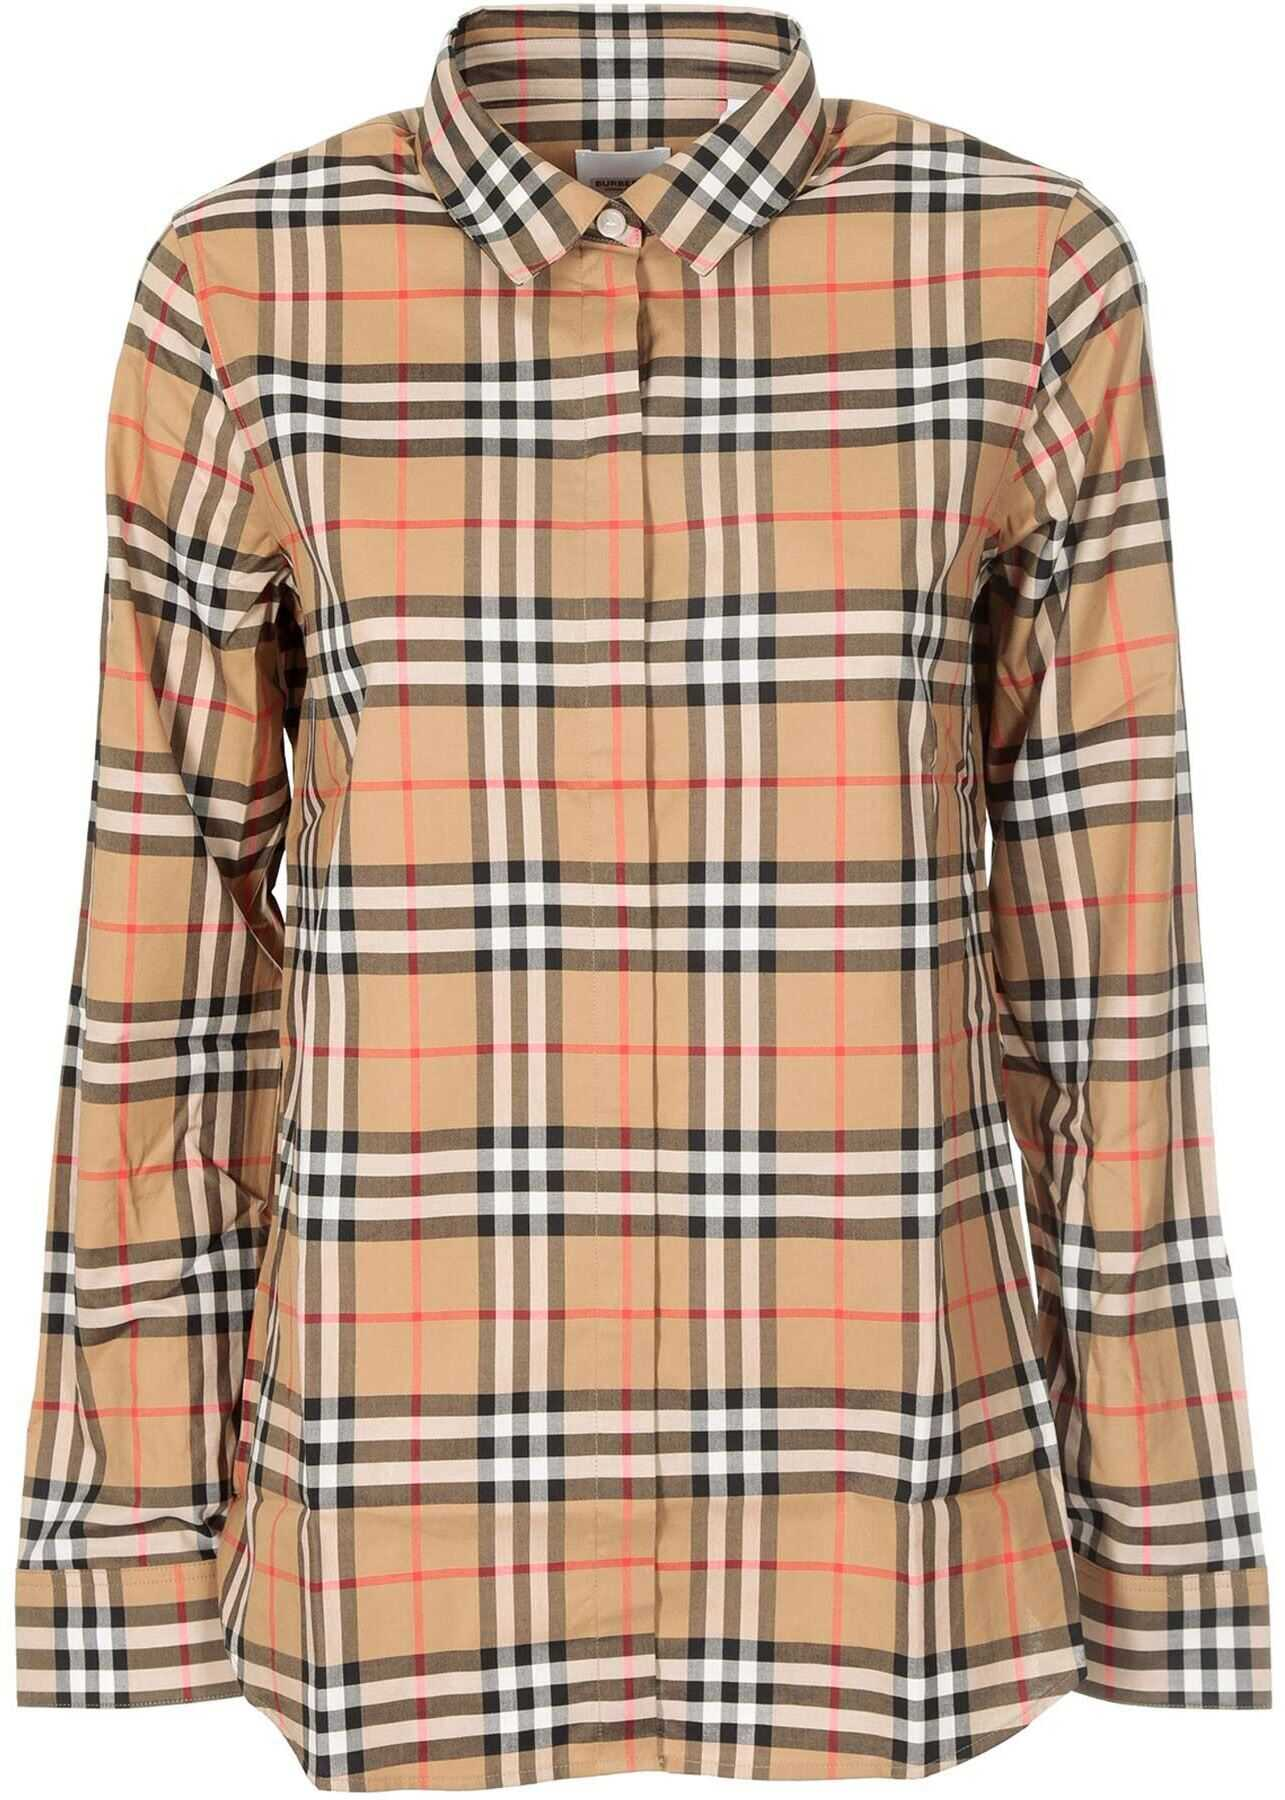 Burberry Crow Shirt In Check Motif Beige